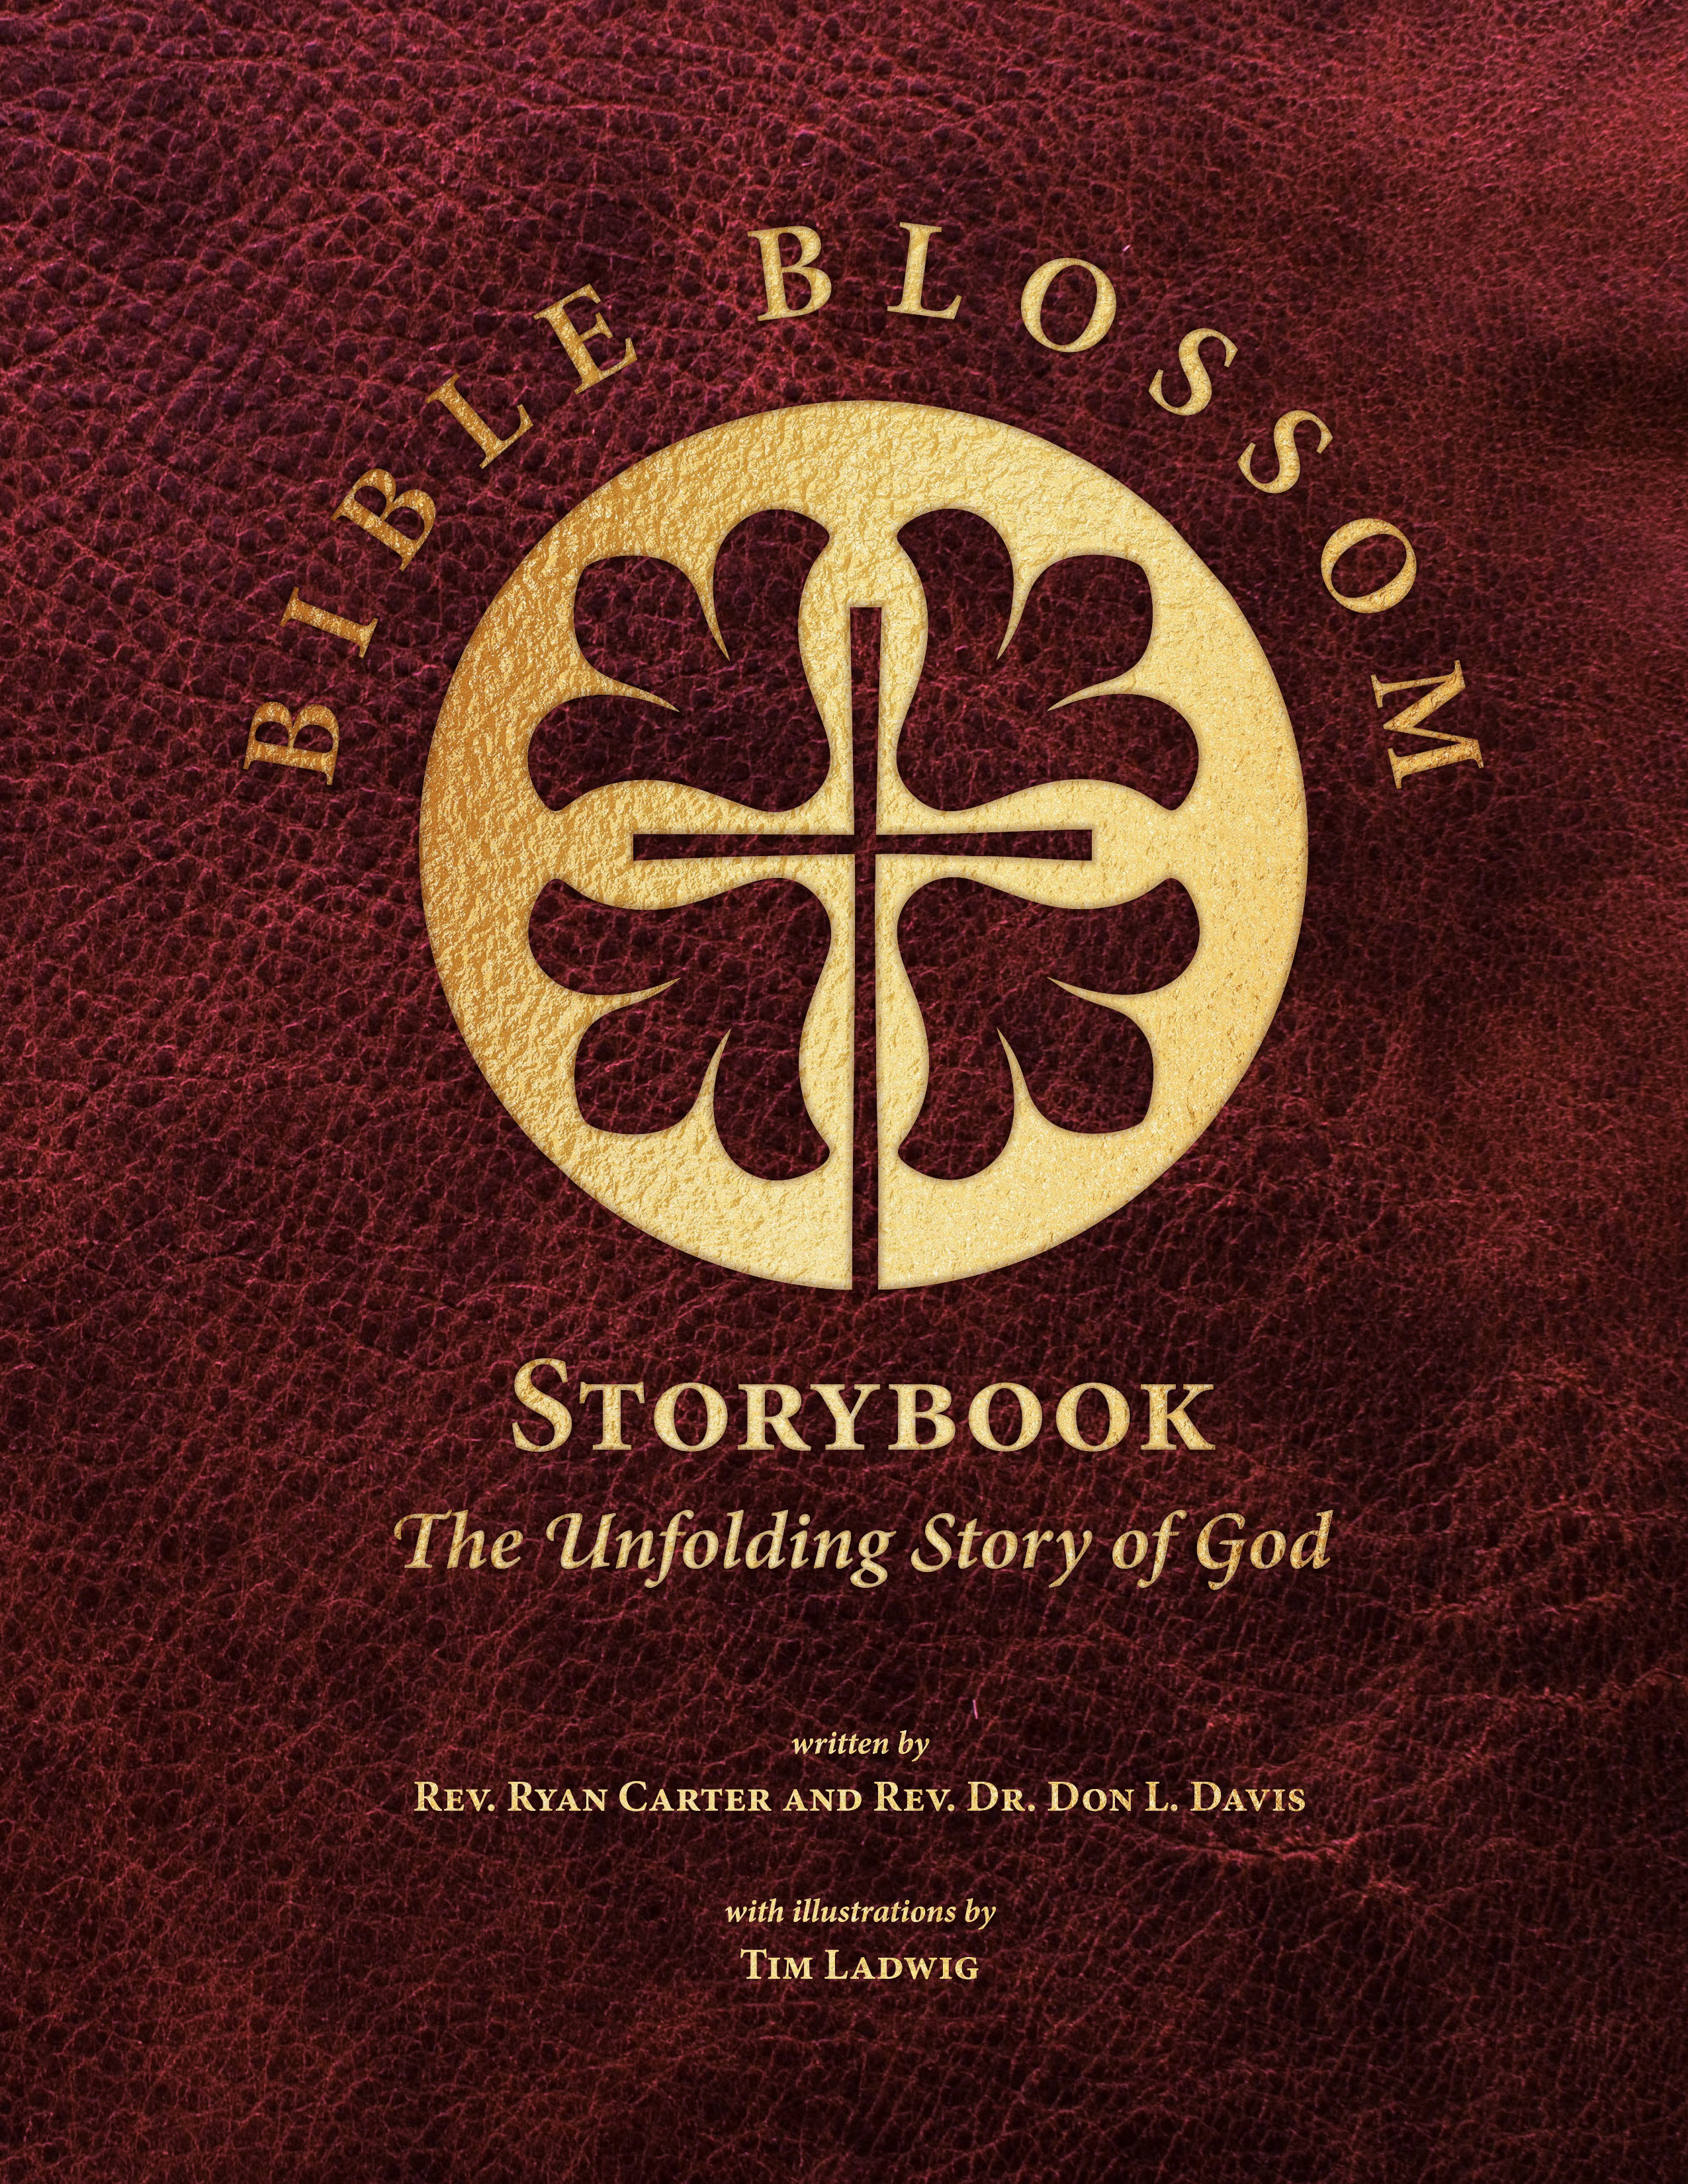 Bible Blossom Storybook front cover